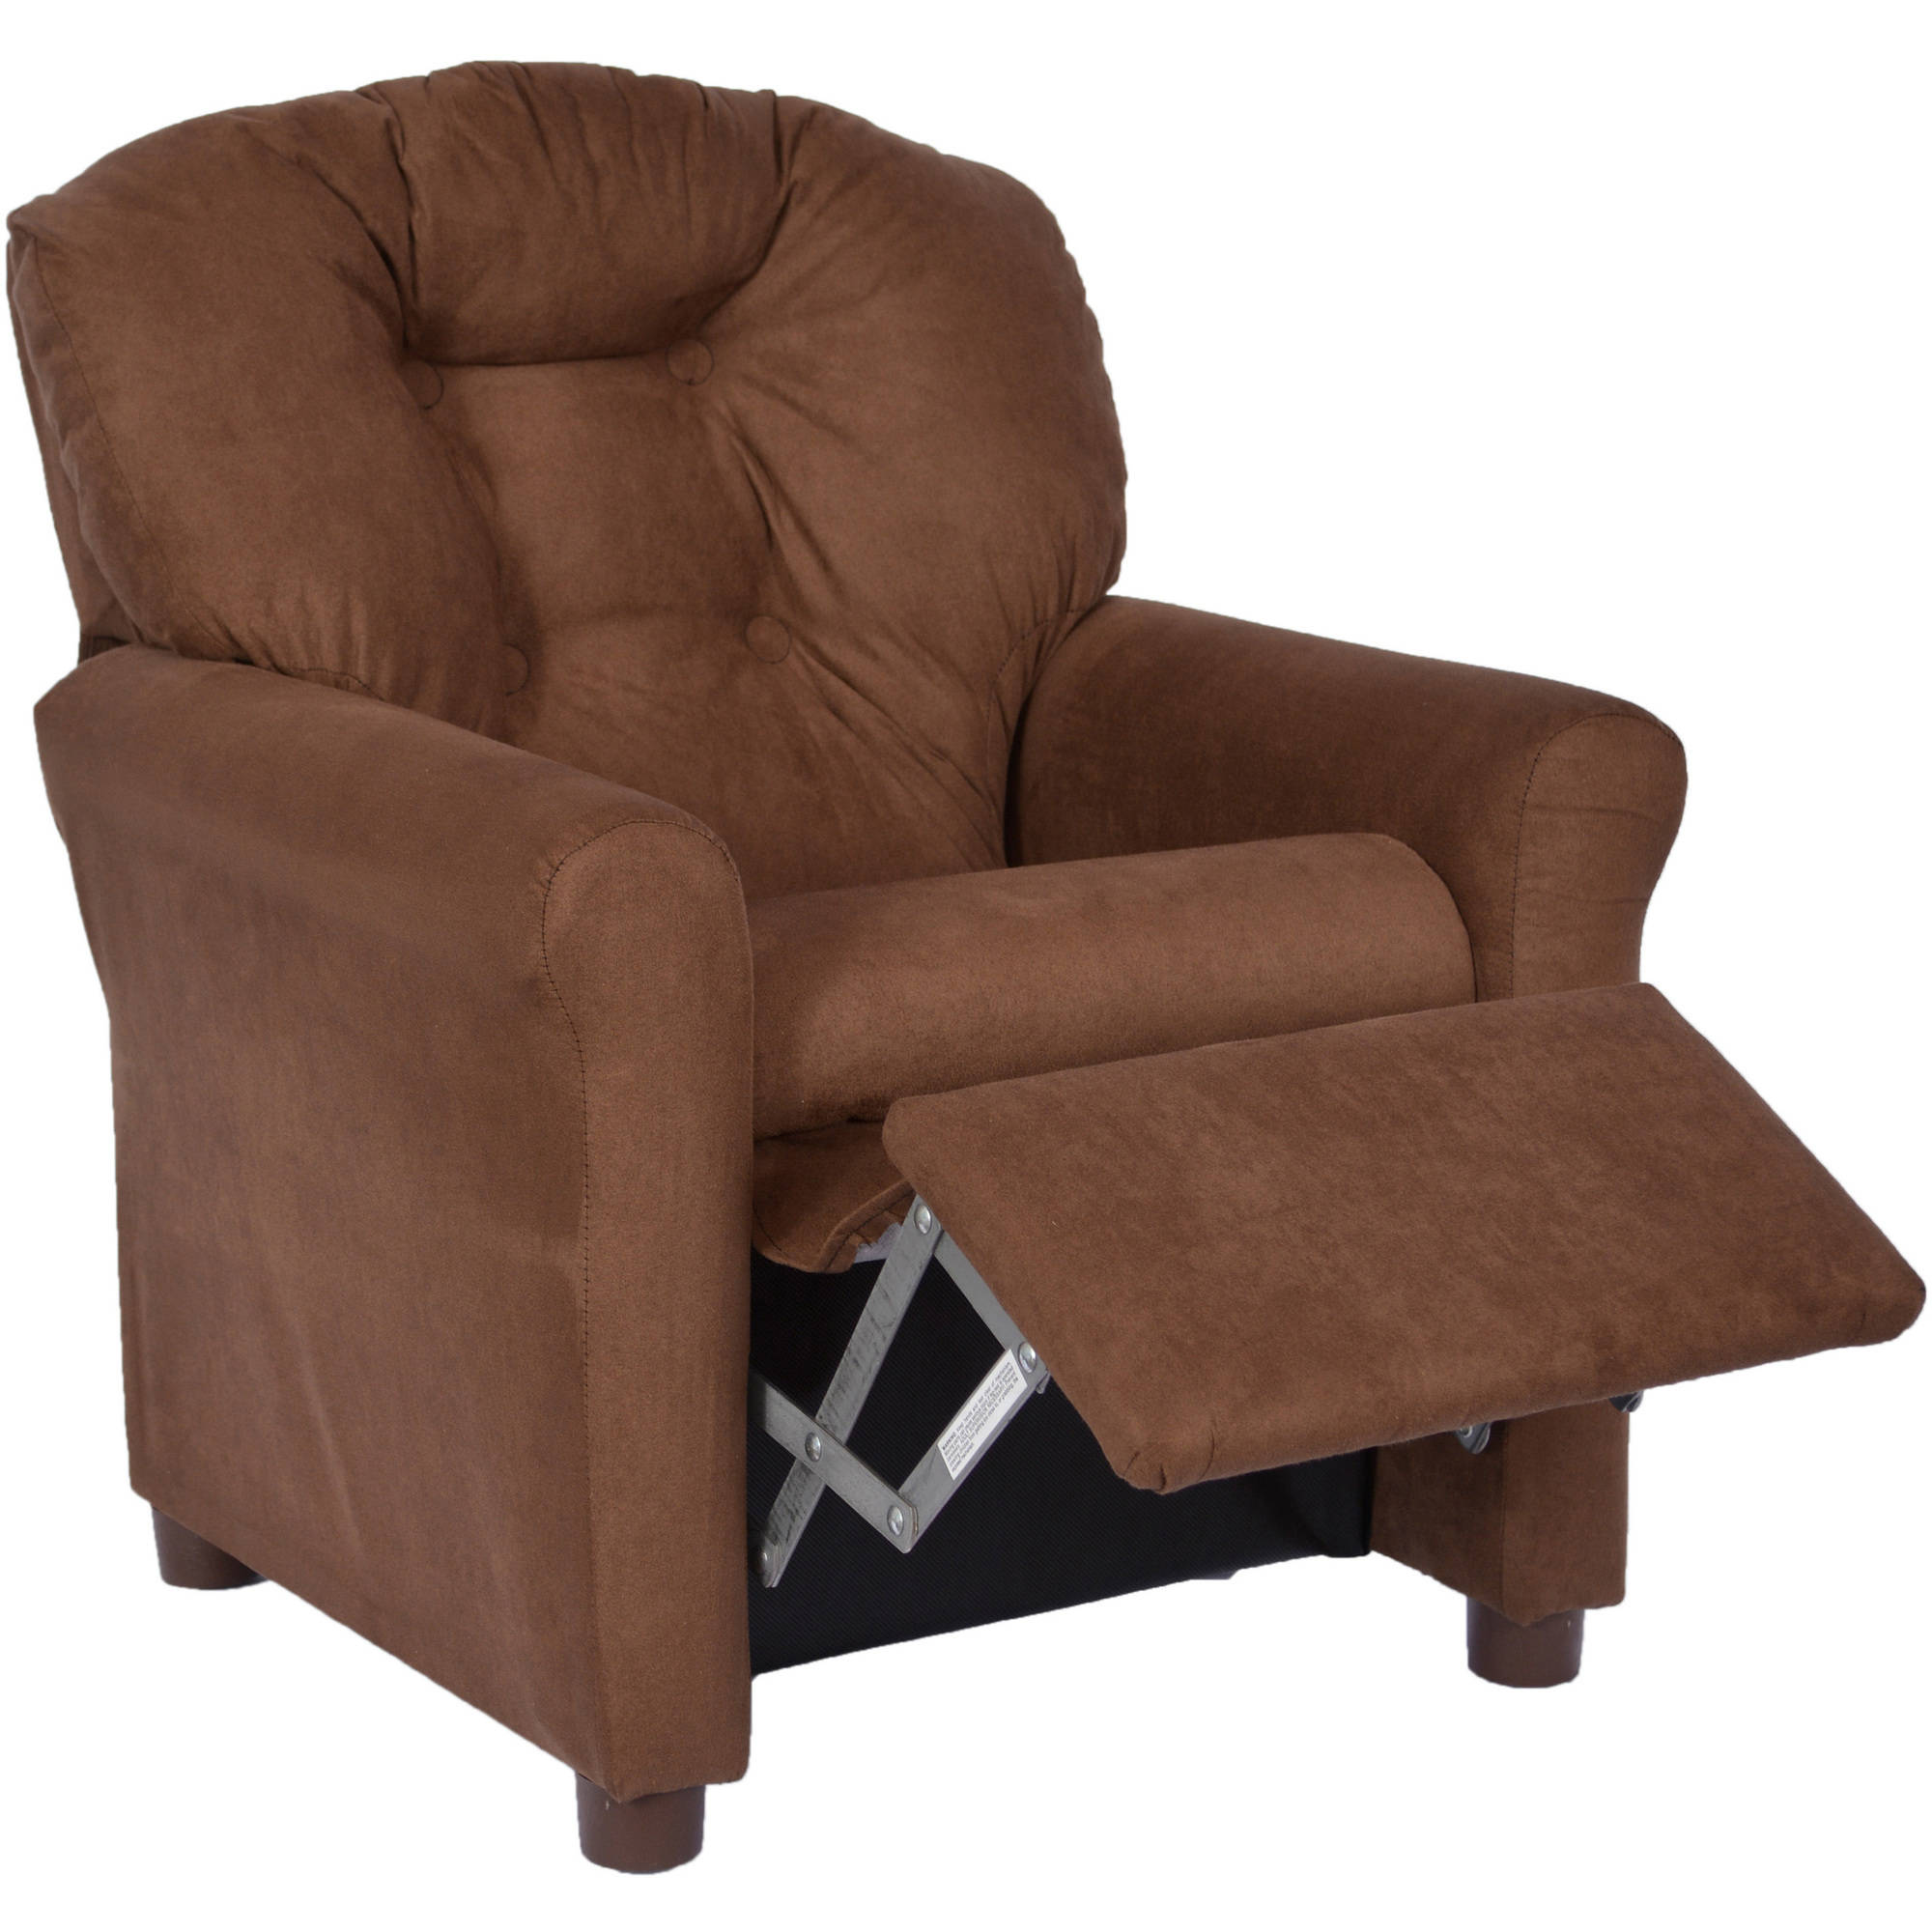 Crew Furniture Traditional Child Recliner Available In